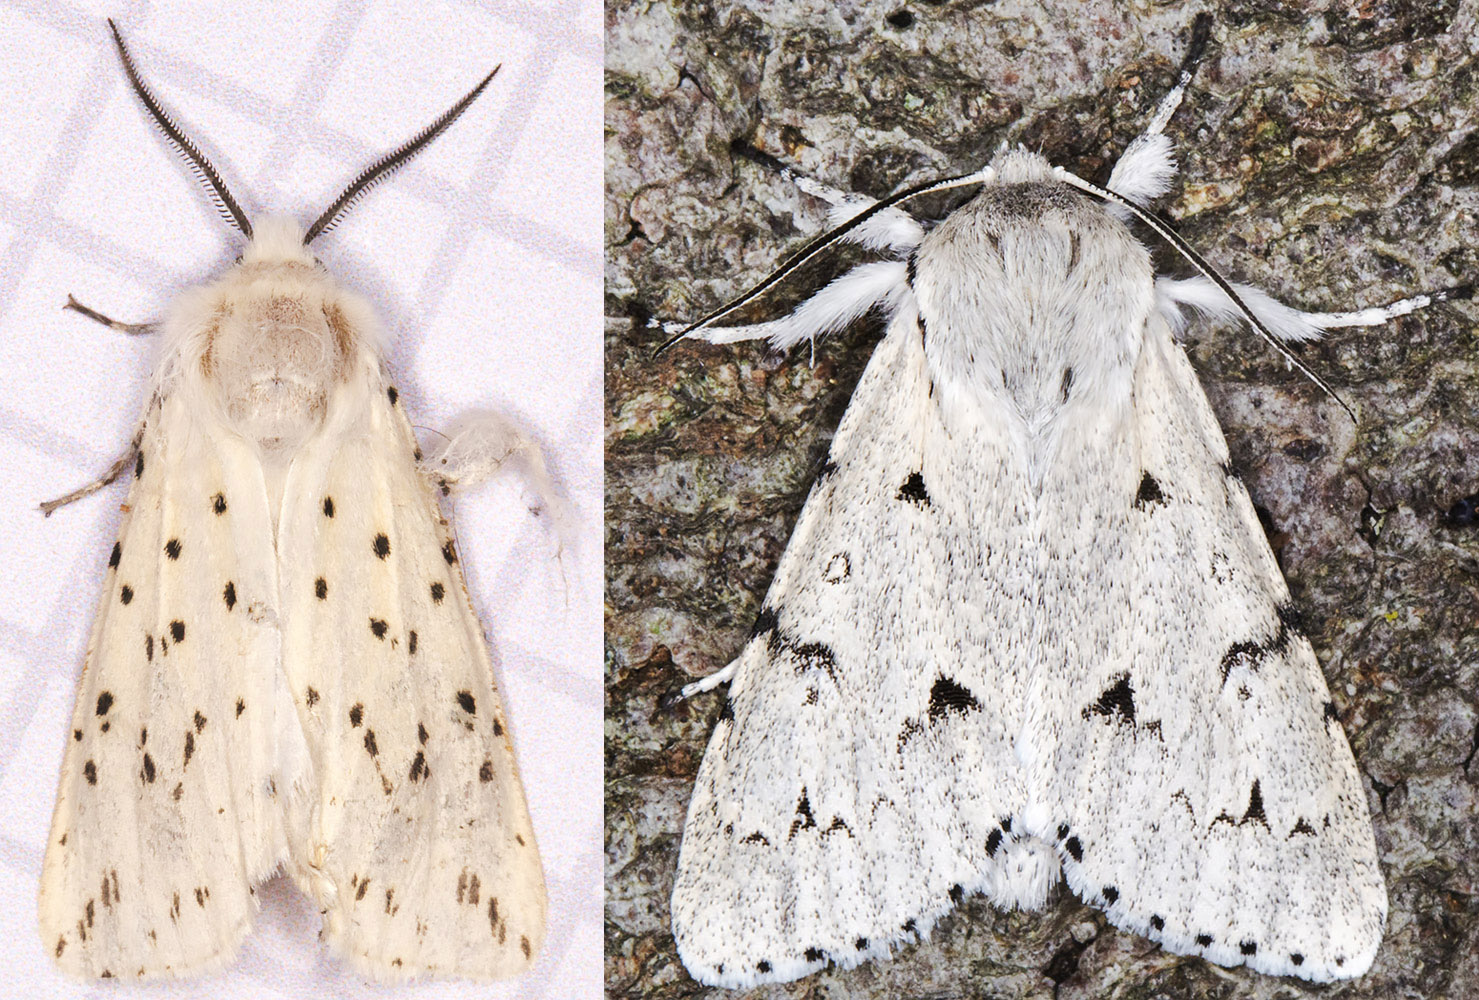 White Ermine, Spilosoma lubricipeda, and The Miller,  Acronicta lepirona.  Hayes,  June 2014.